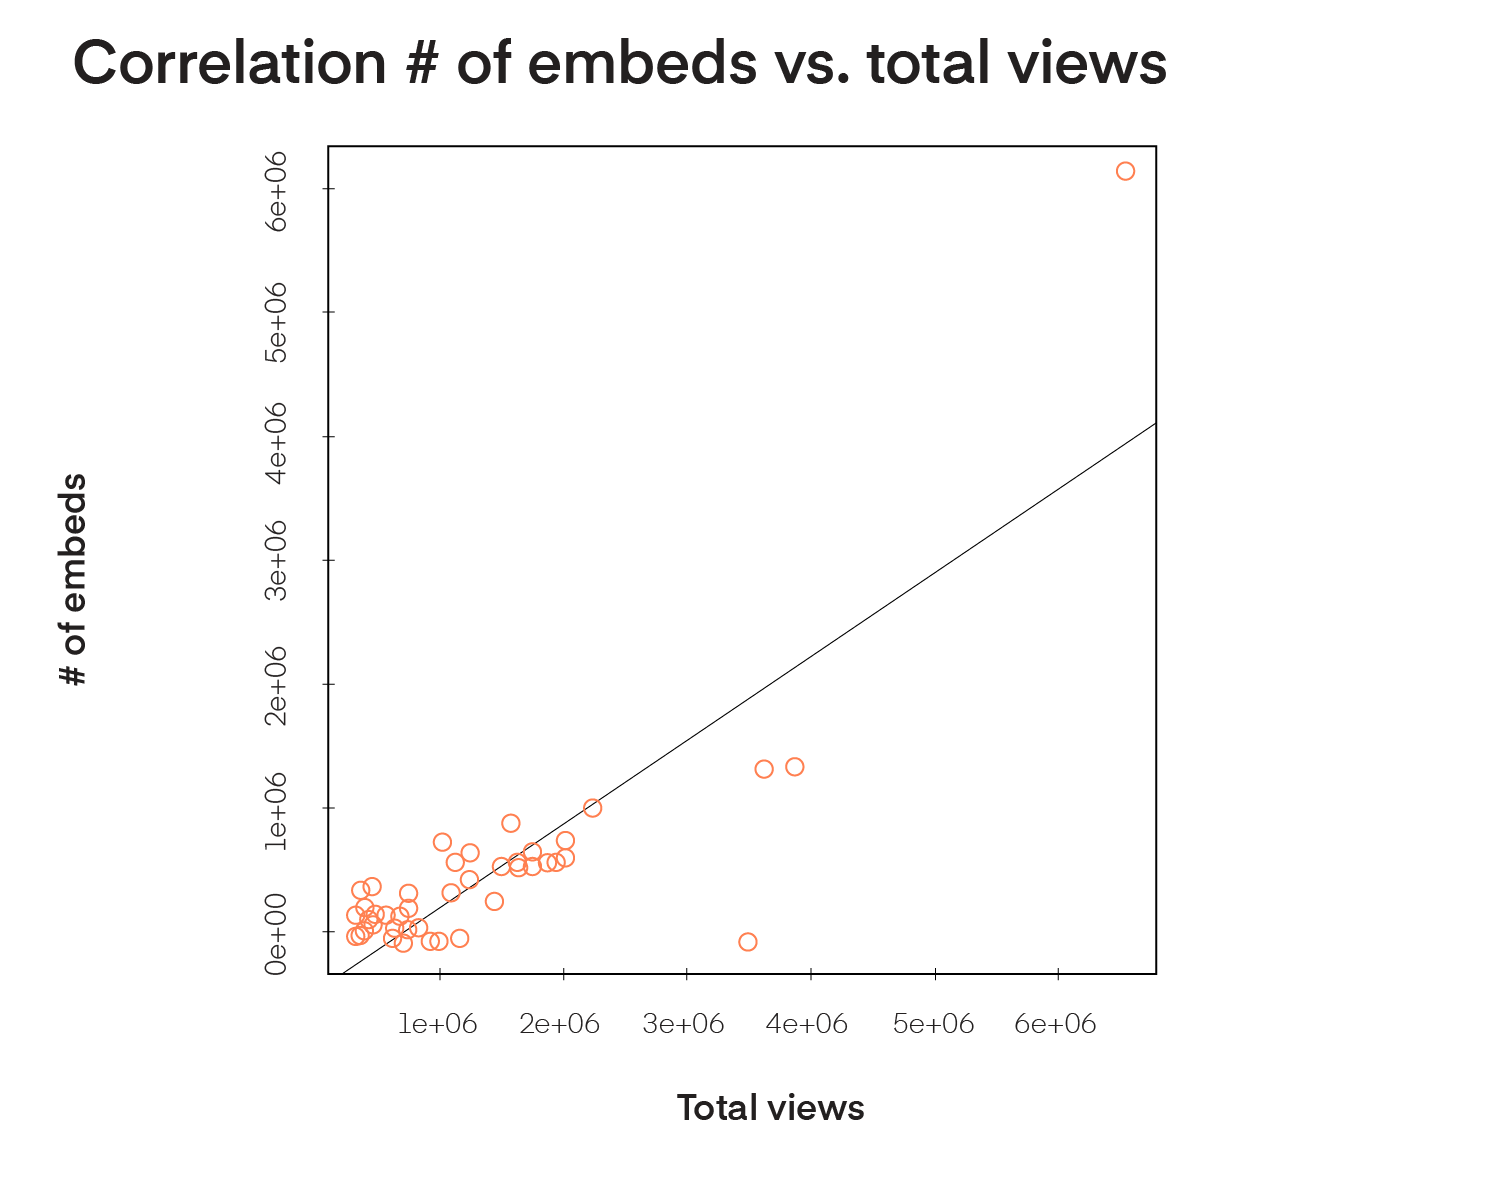 Correlation  of embeds vs total views